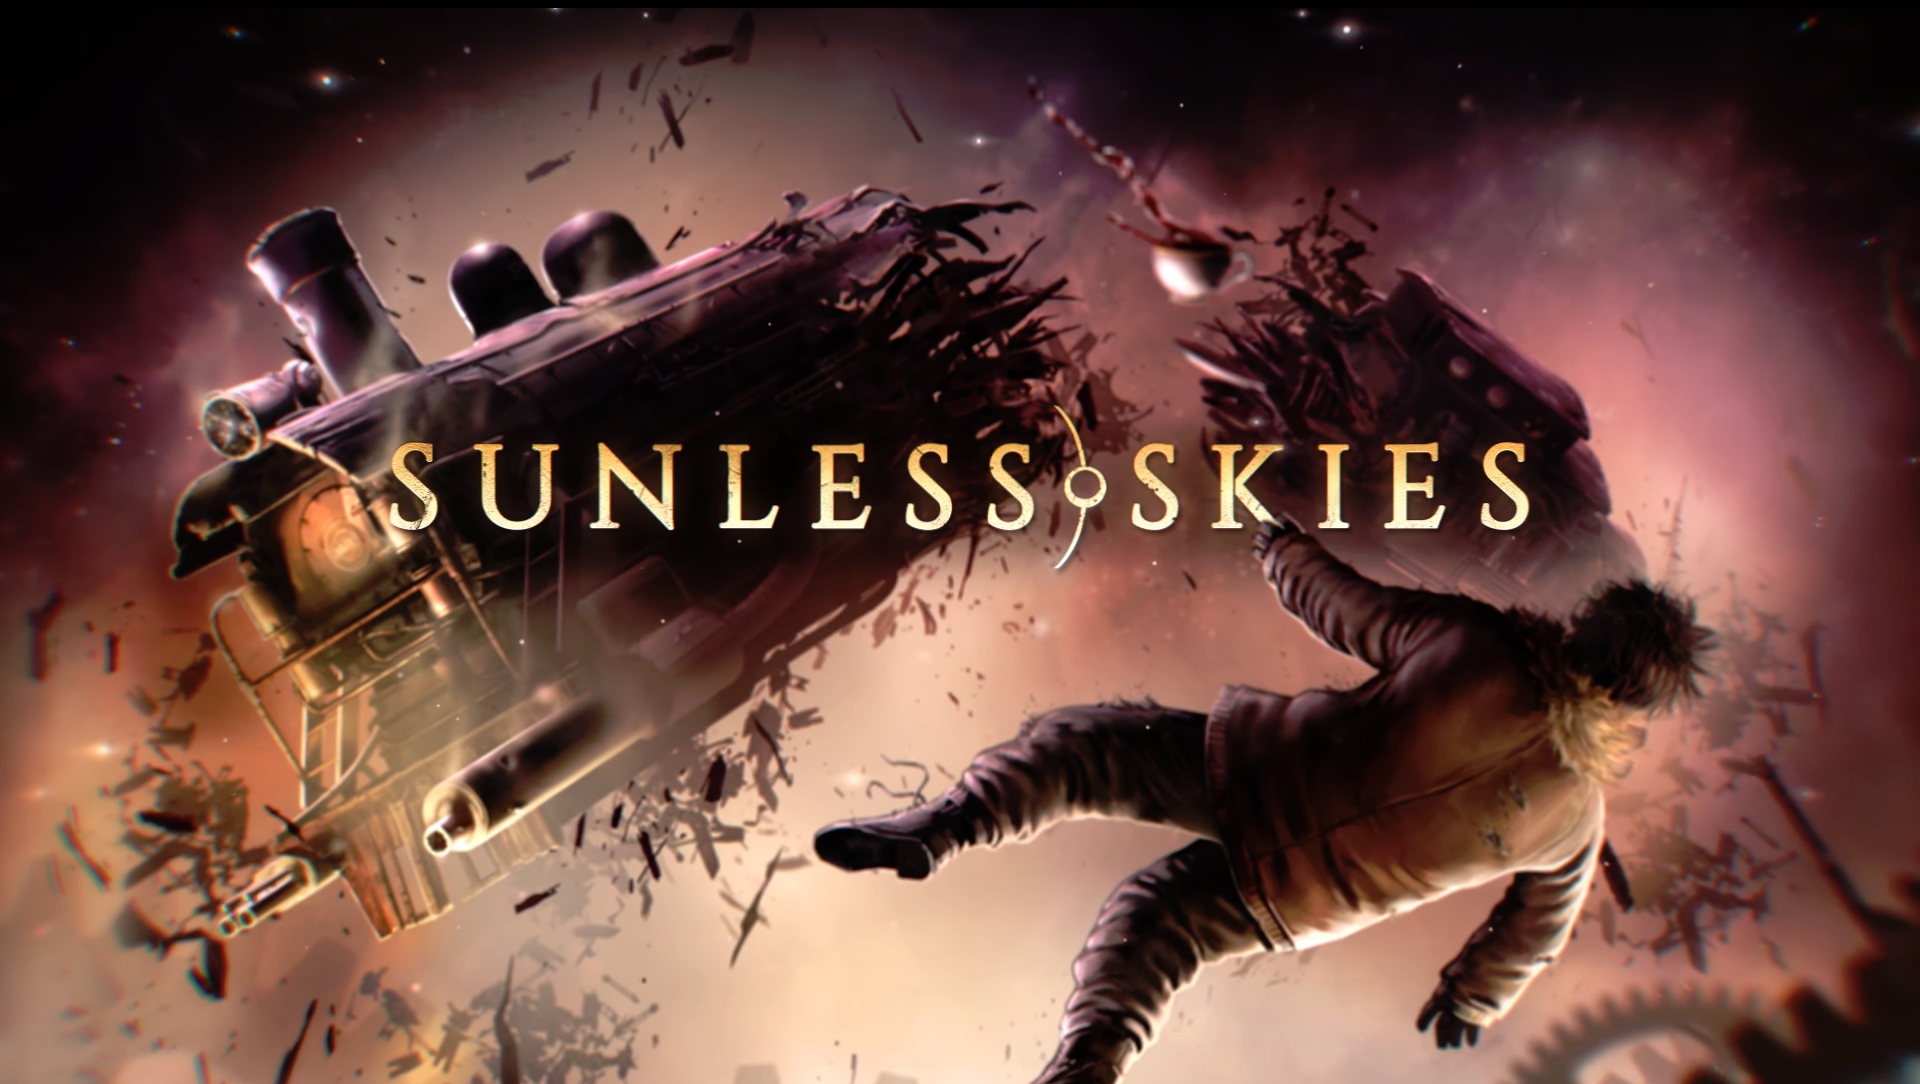 Sunless Skies Given A January 2019 Release Date